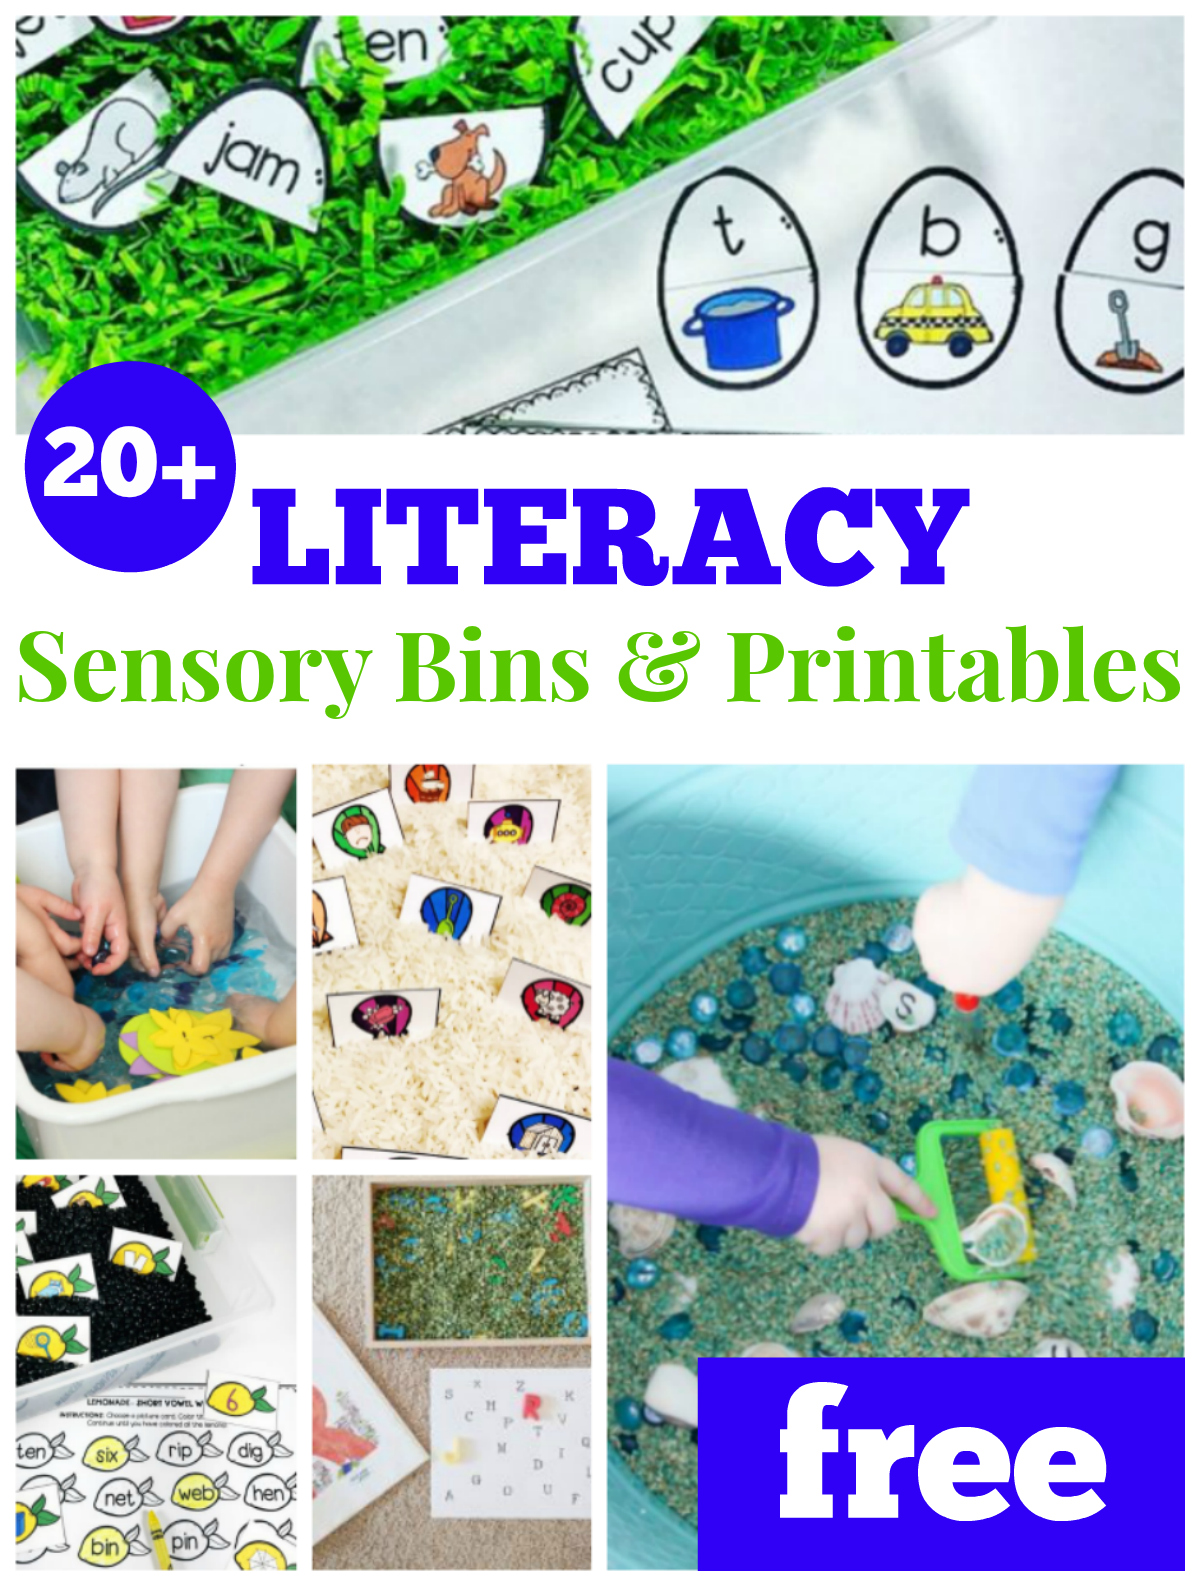 20+ Literacy Sensory Bins and Printable for Pre-K and Kindergarten, free